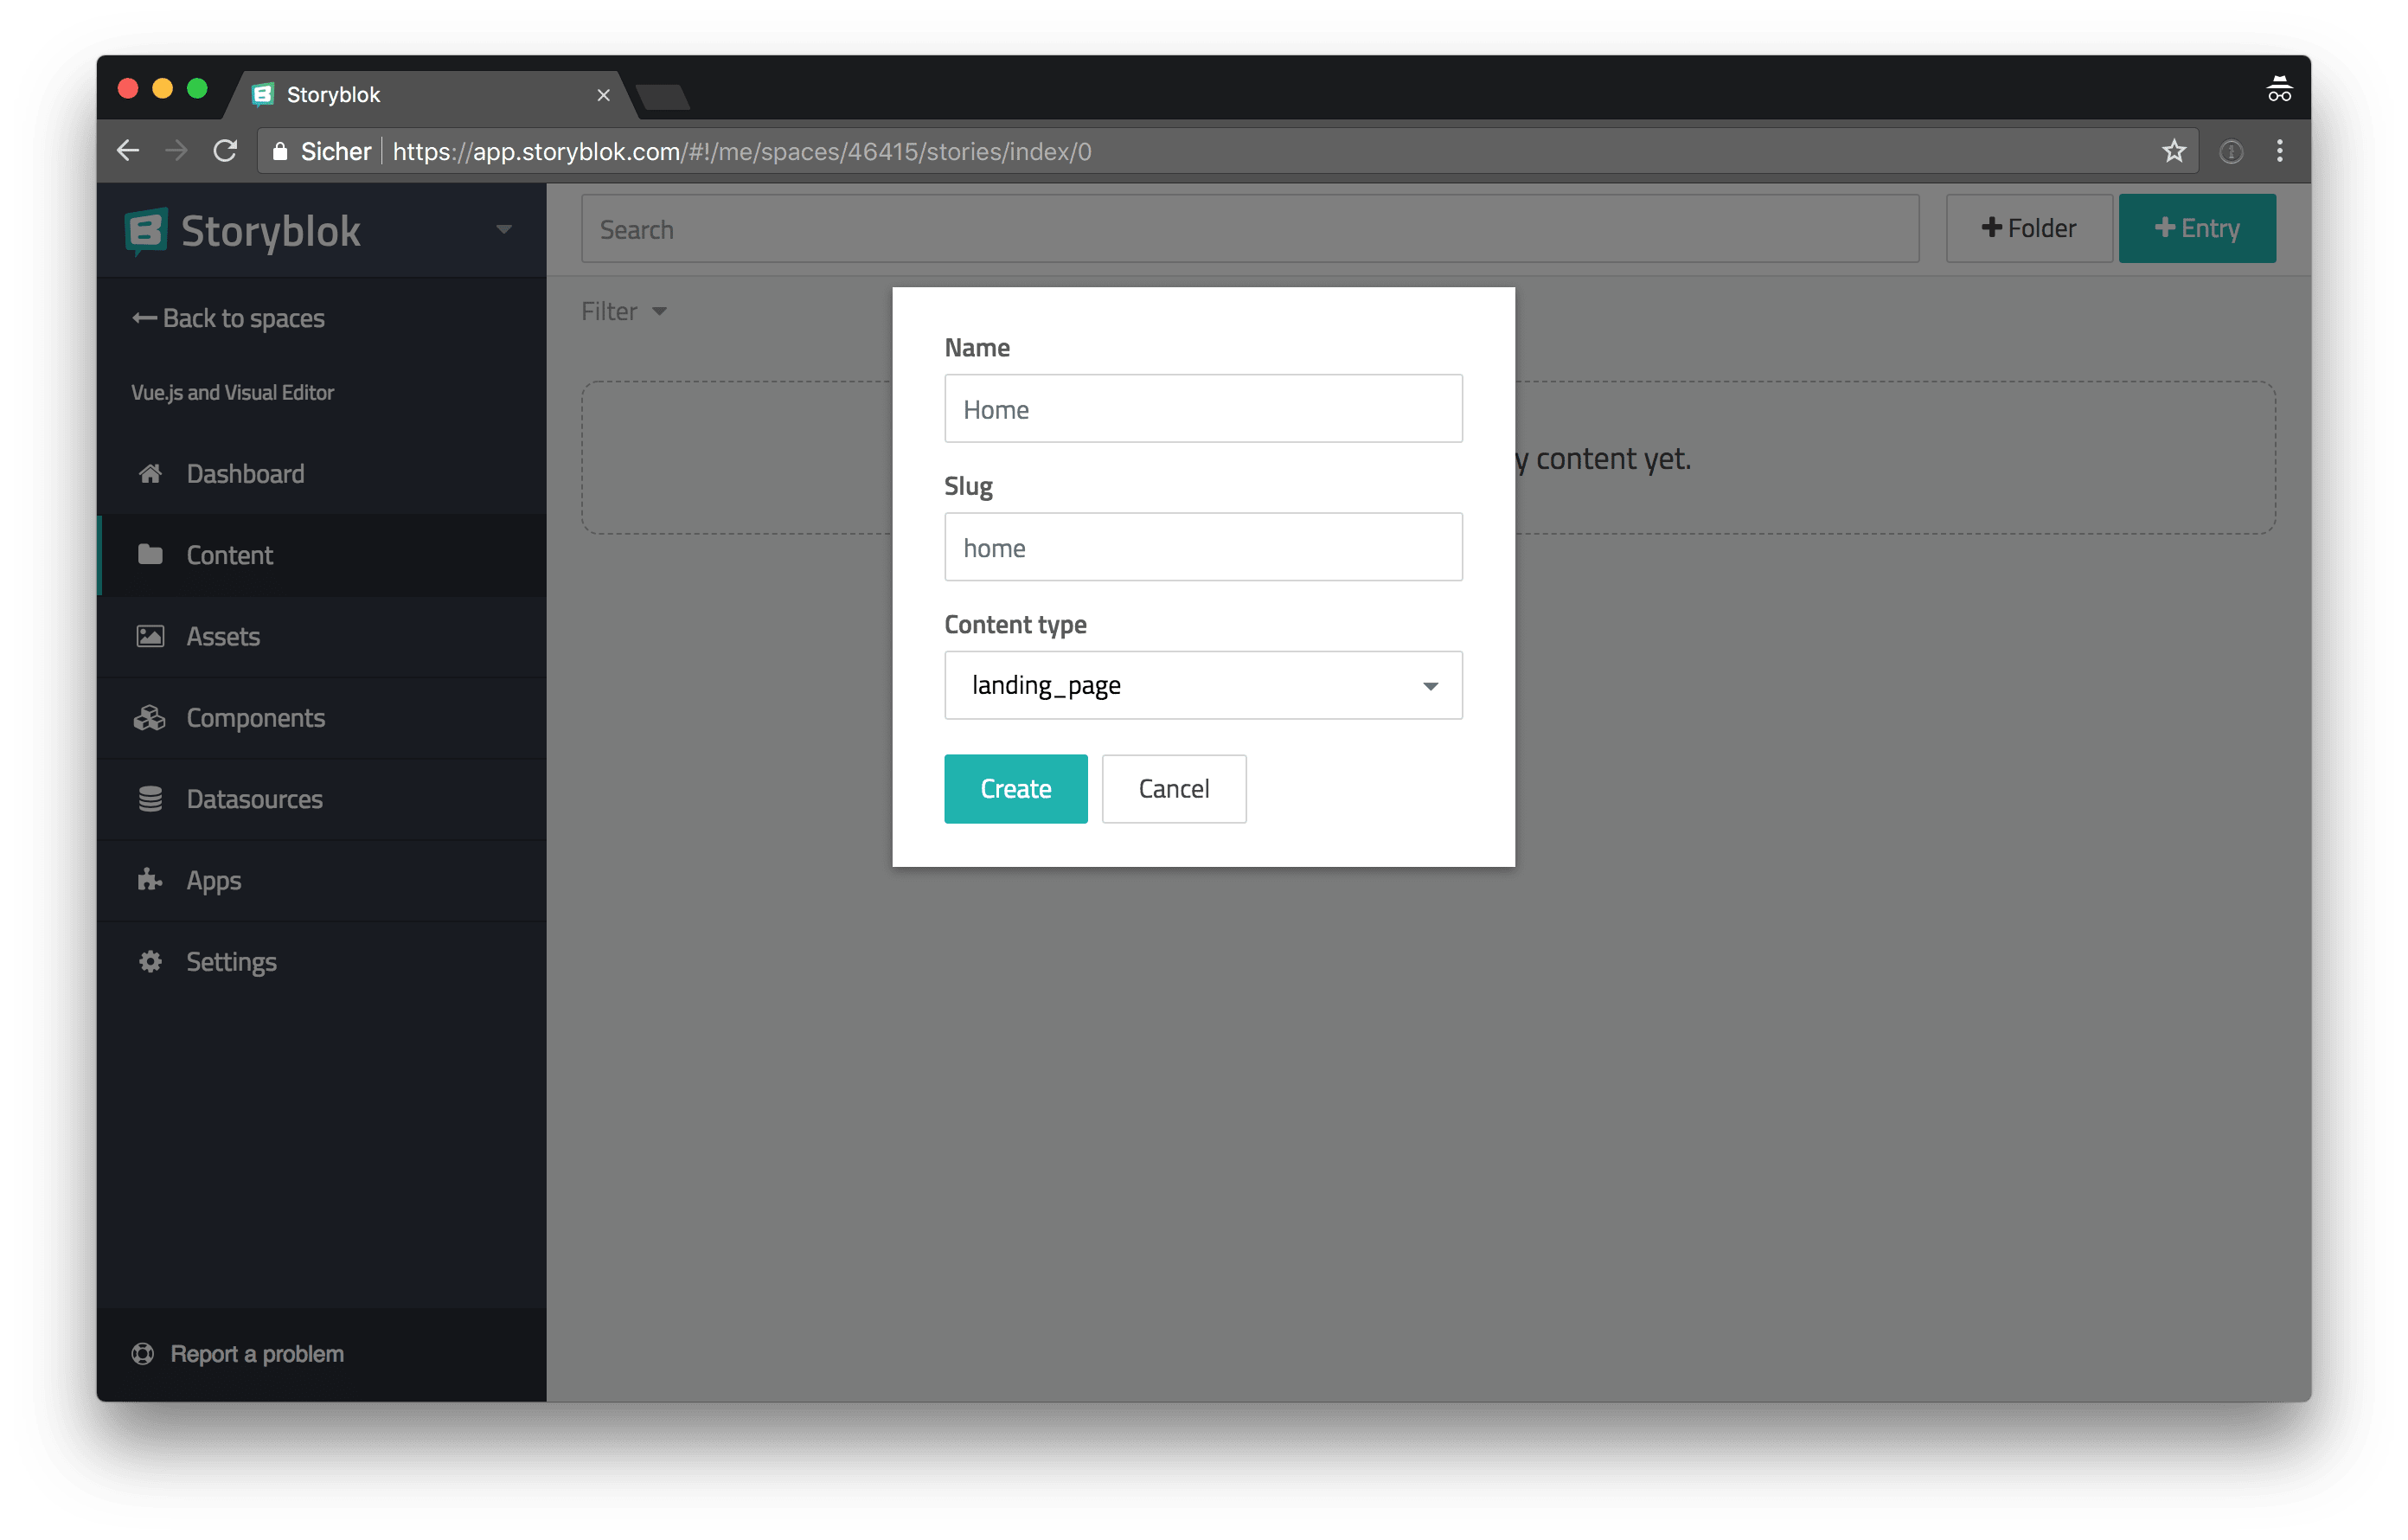 Building a Website with Vue js, the Storyblok Visual Editor